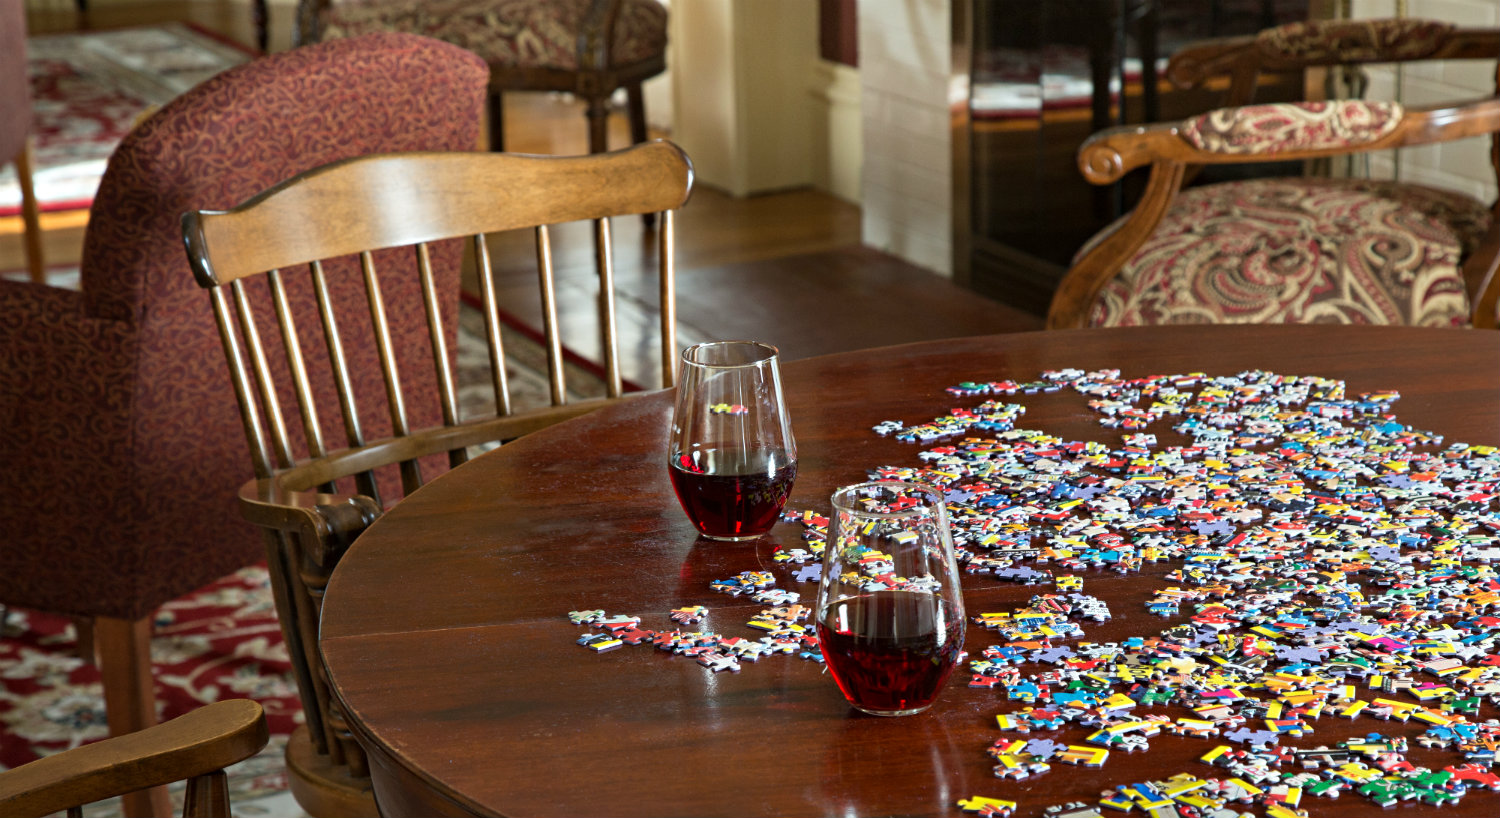 A puzzle is laid out on a wooden table with two stemless wine glasses.